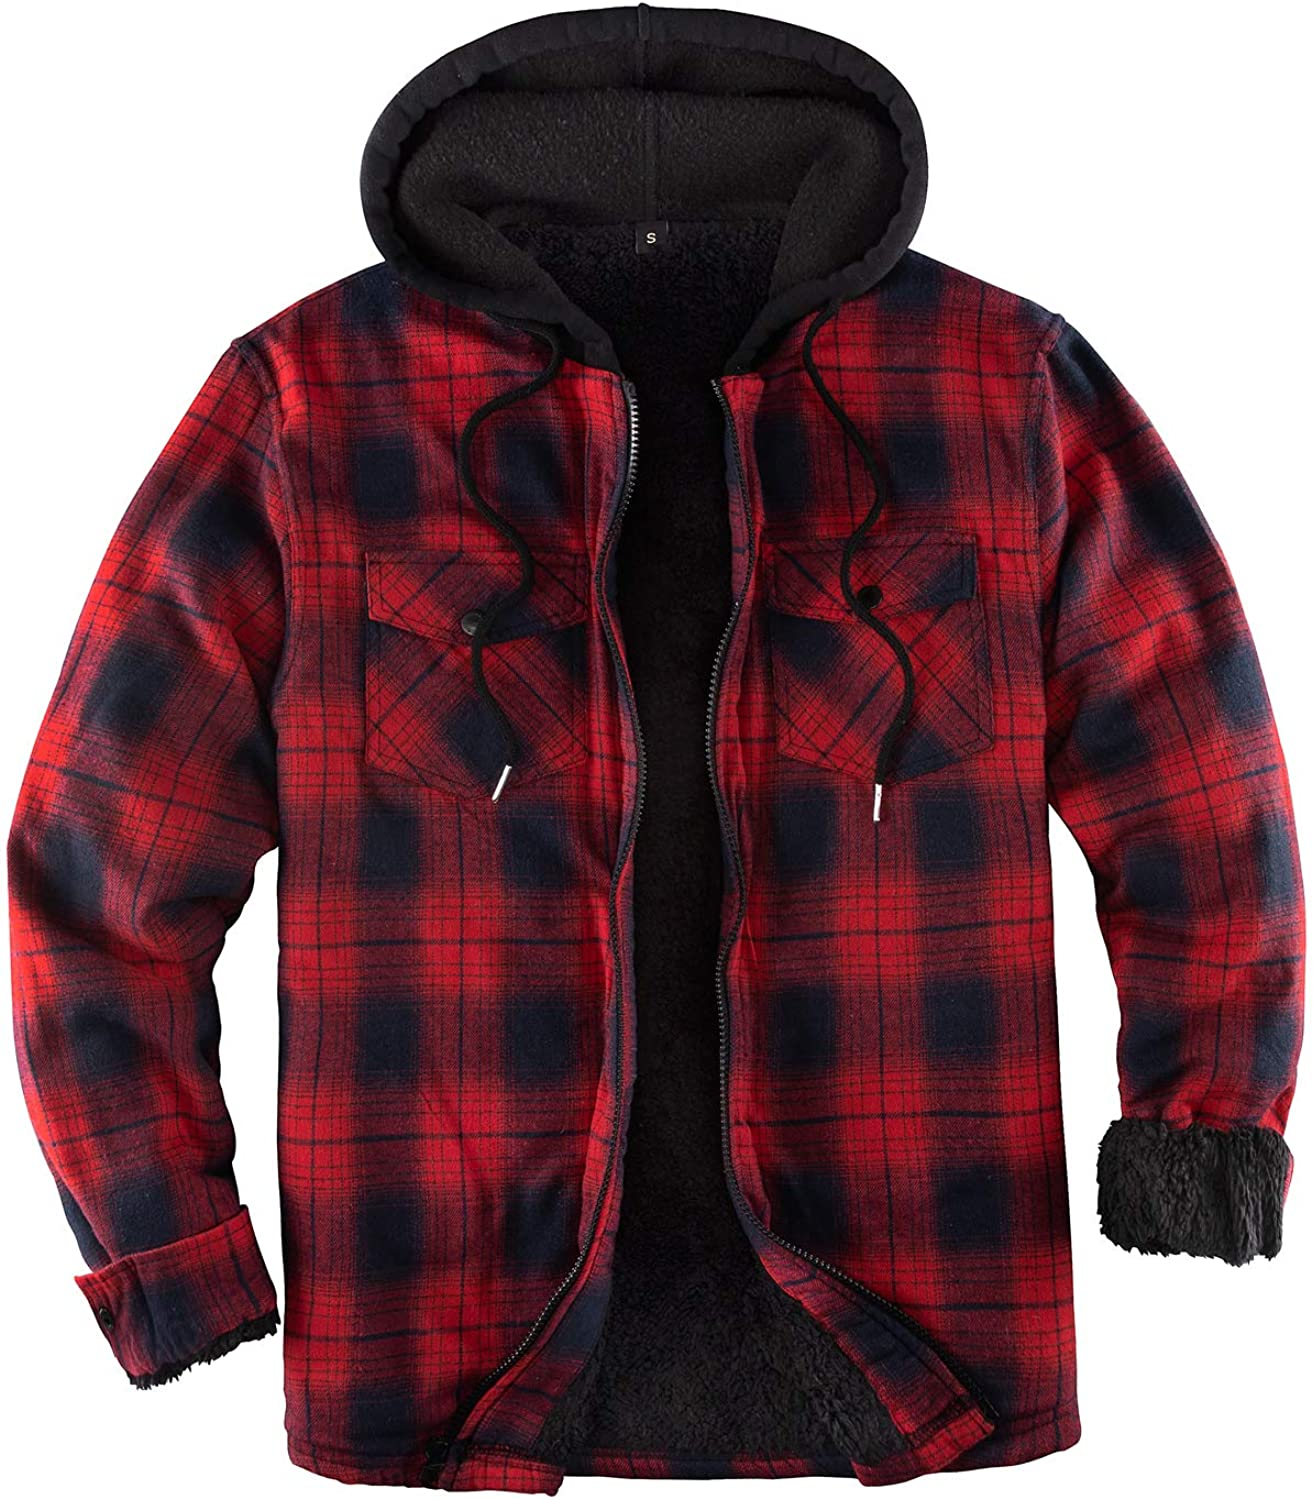 Now free shipping ZENTHACE Men's Sherpa Lined Full Super popular specialty store Zip Hooded Shirt Plaid Jacket